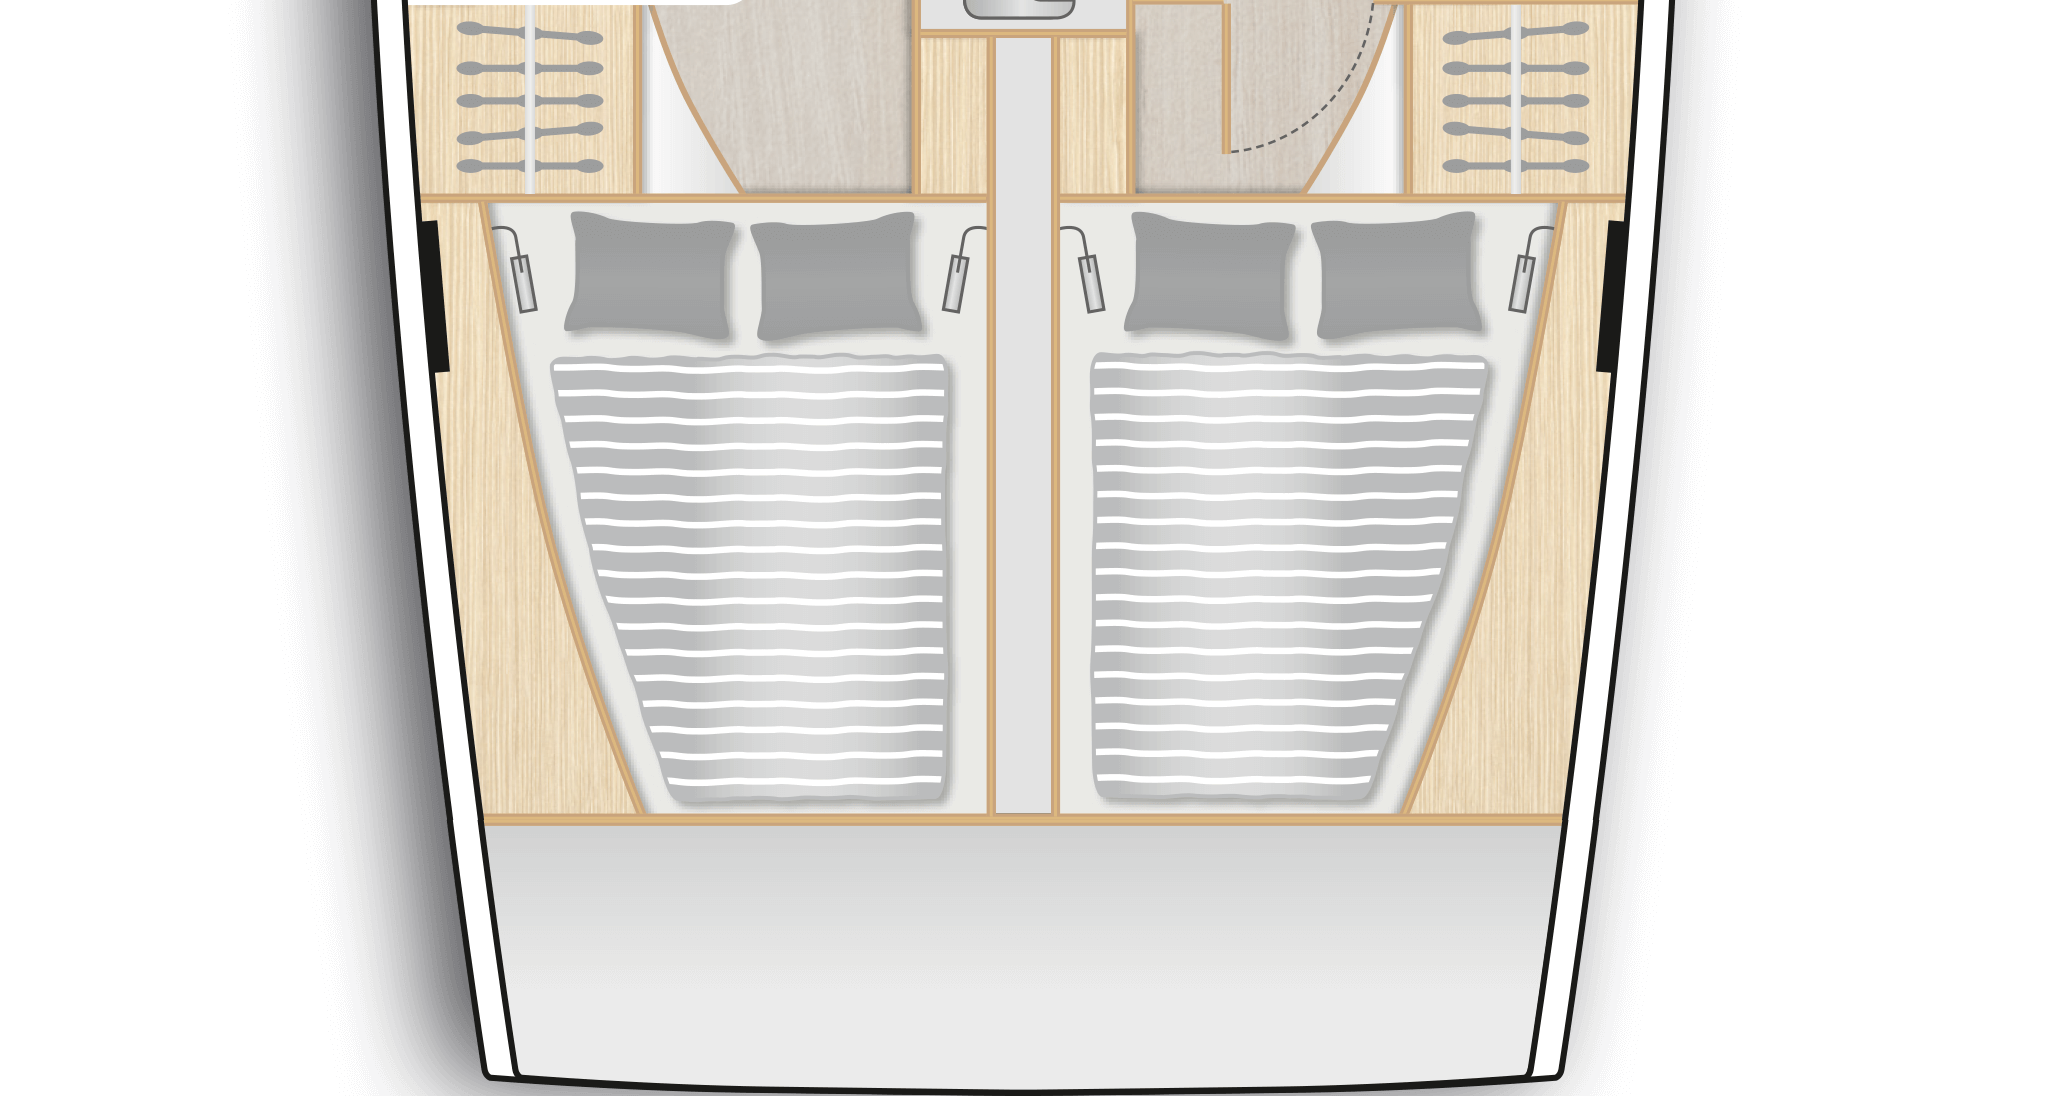 C2: 2 aft cabins with double berth and storage space